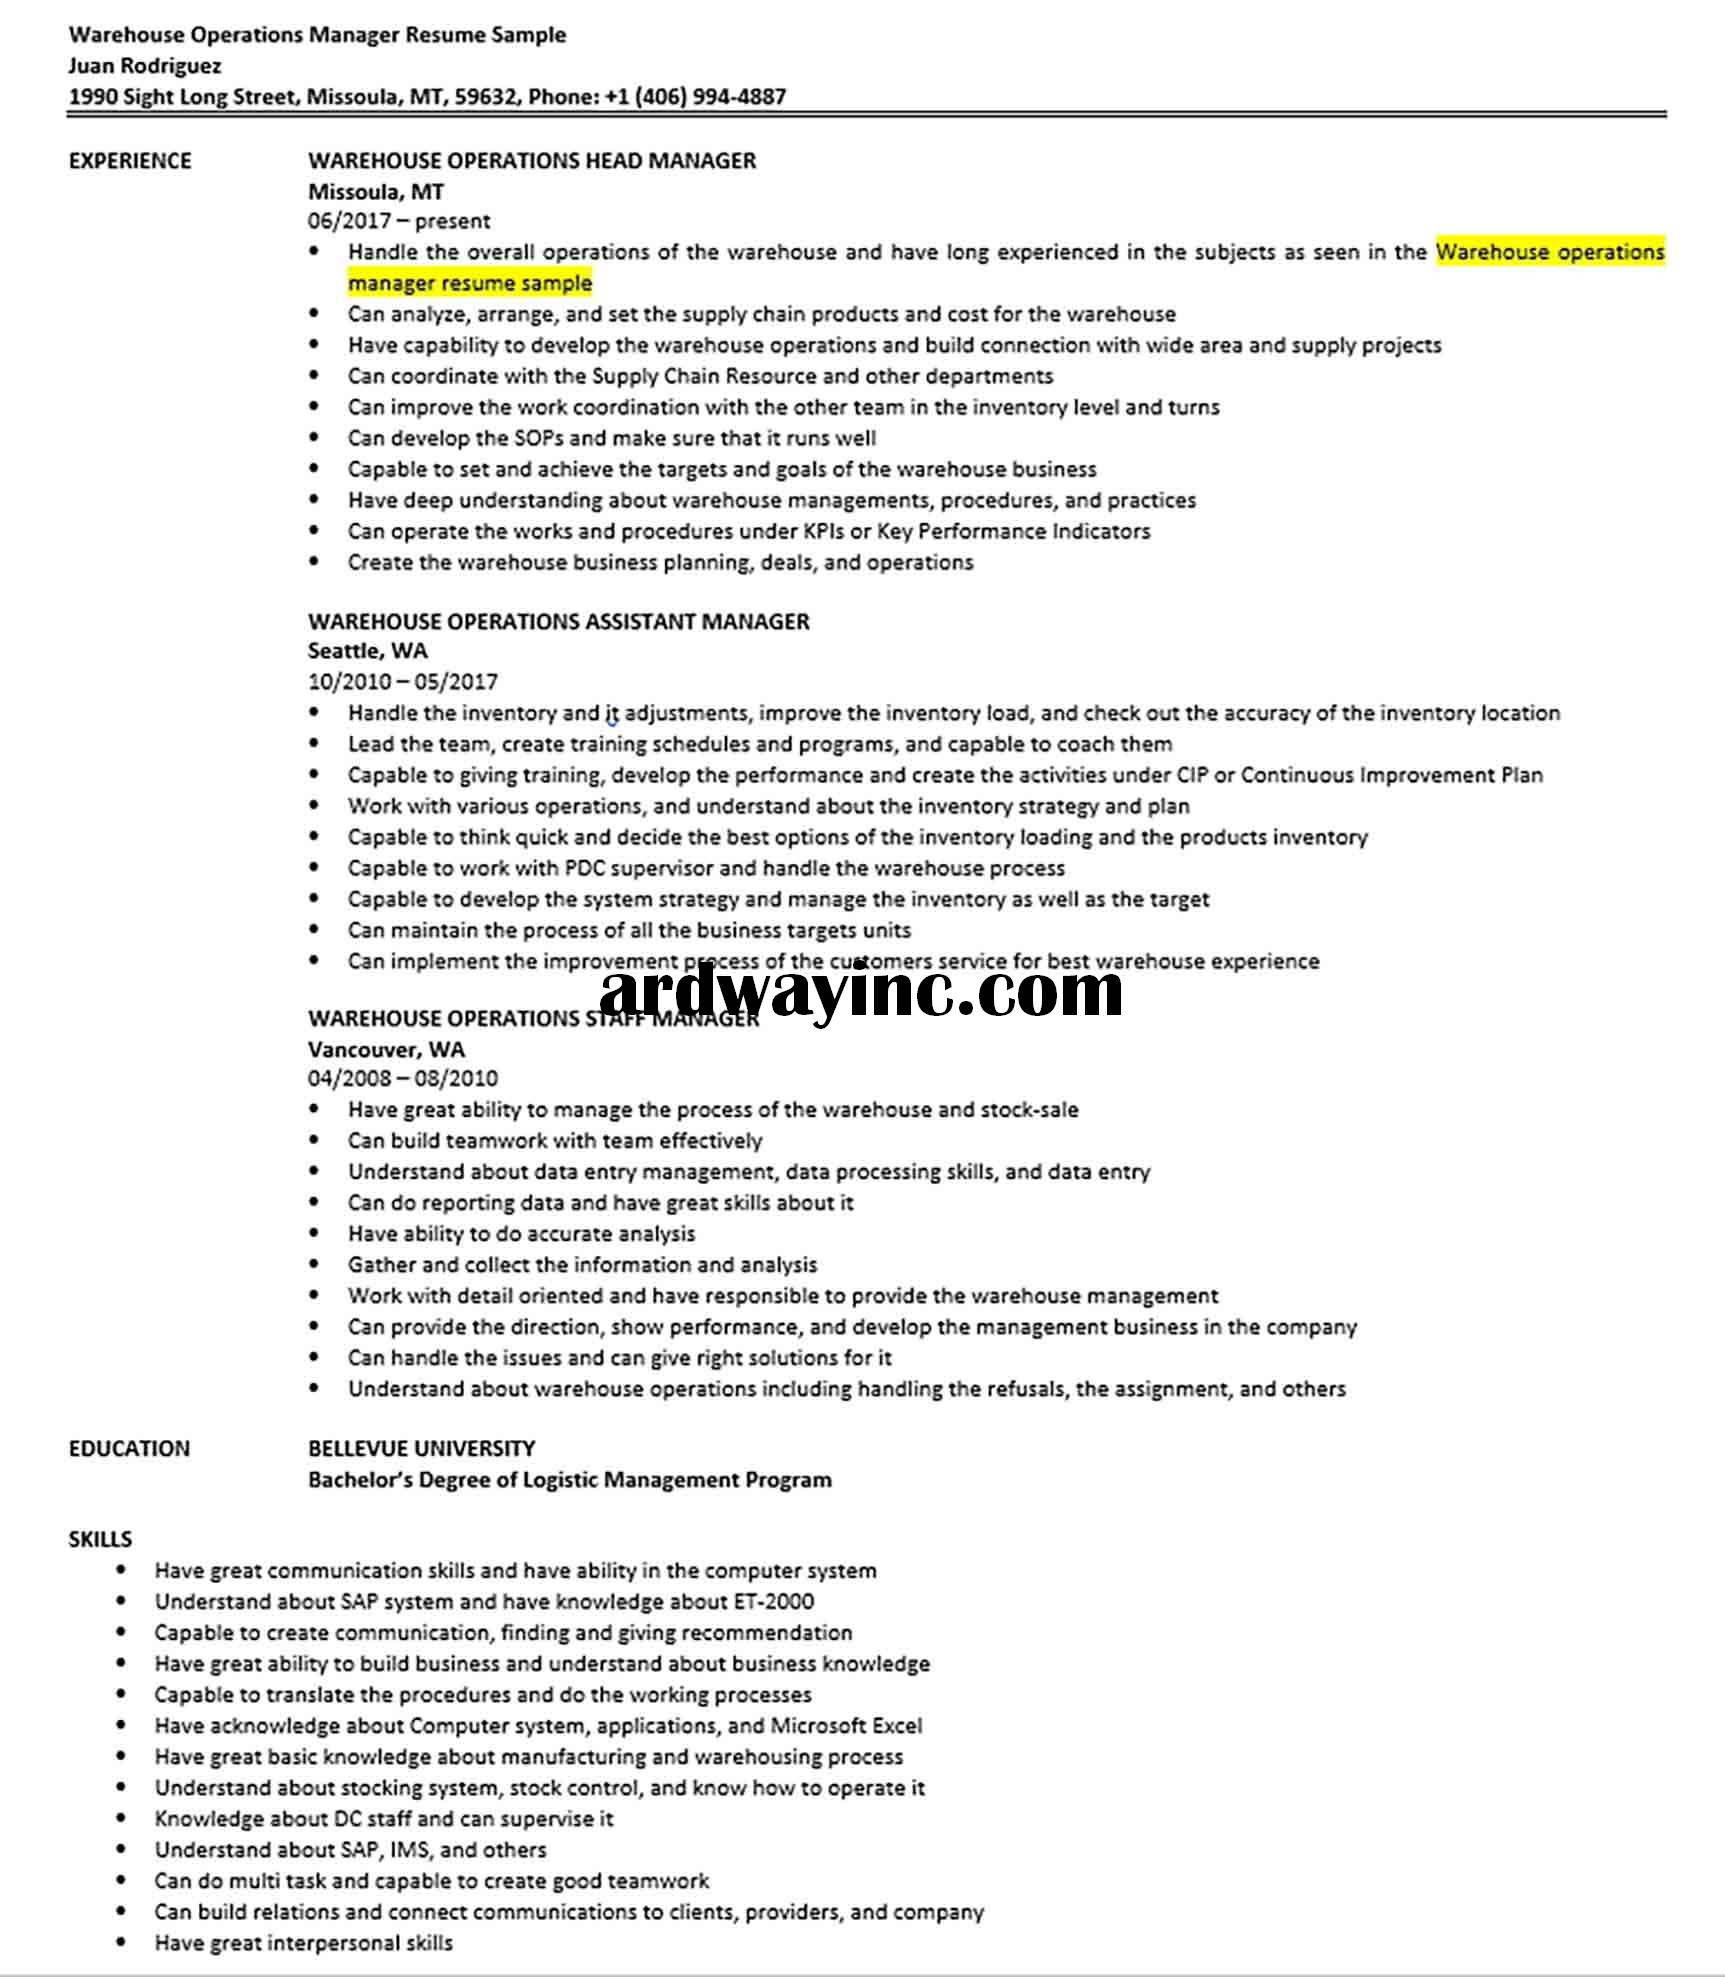 Warehouse Operations Manager Resume Sample Operations Management Manager Resume Resume